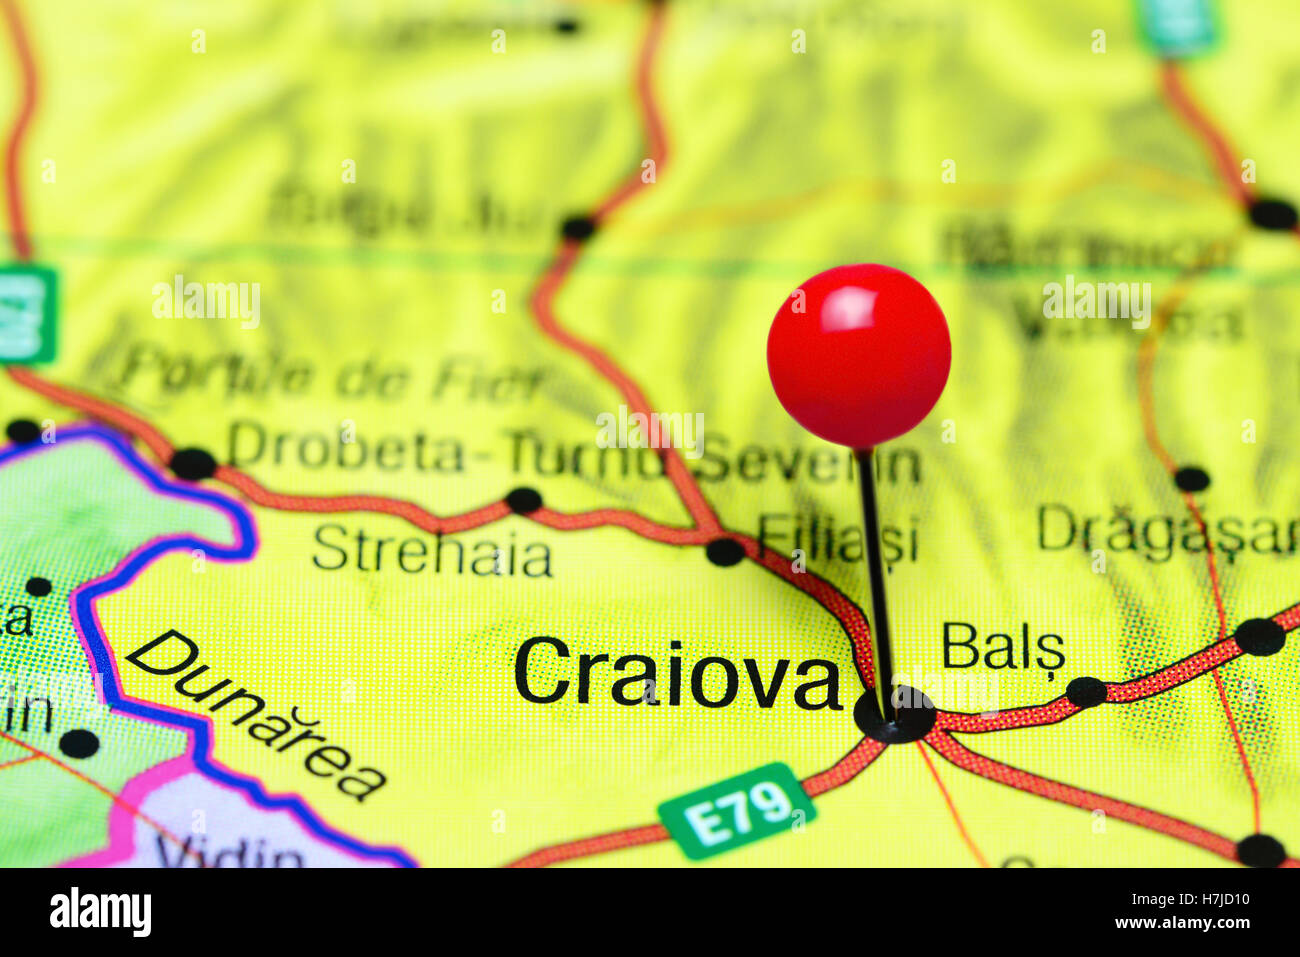 Craiova pinned on a map of Romania Stock Photo Royalty Free Image